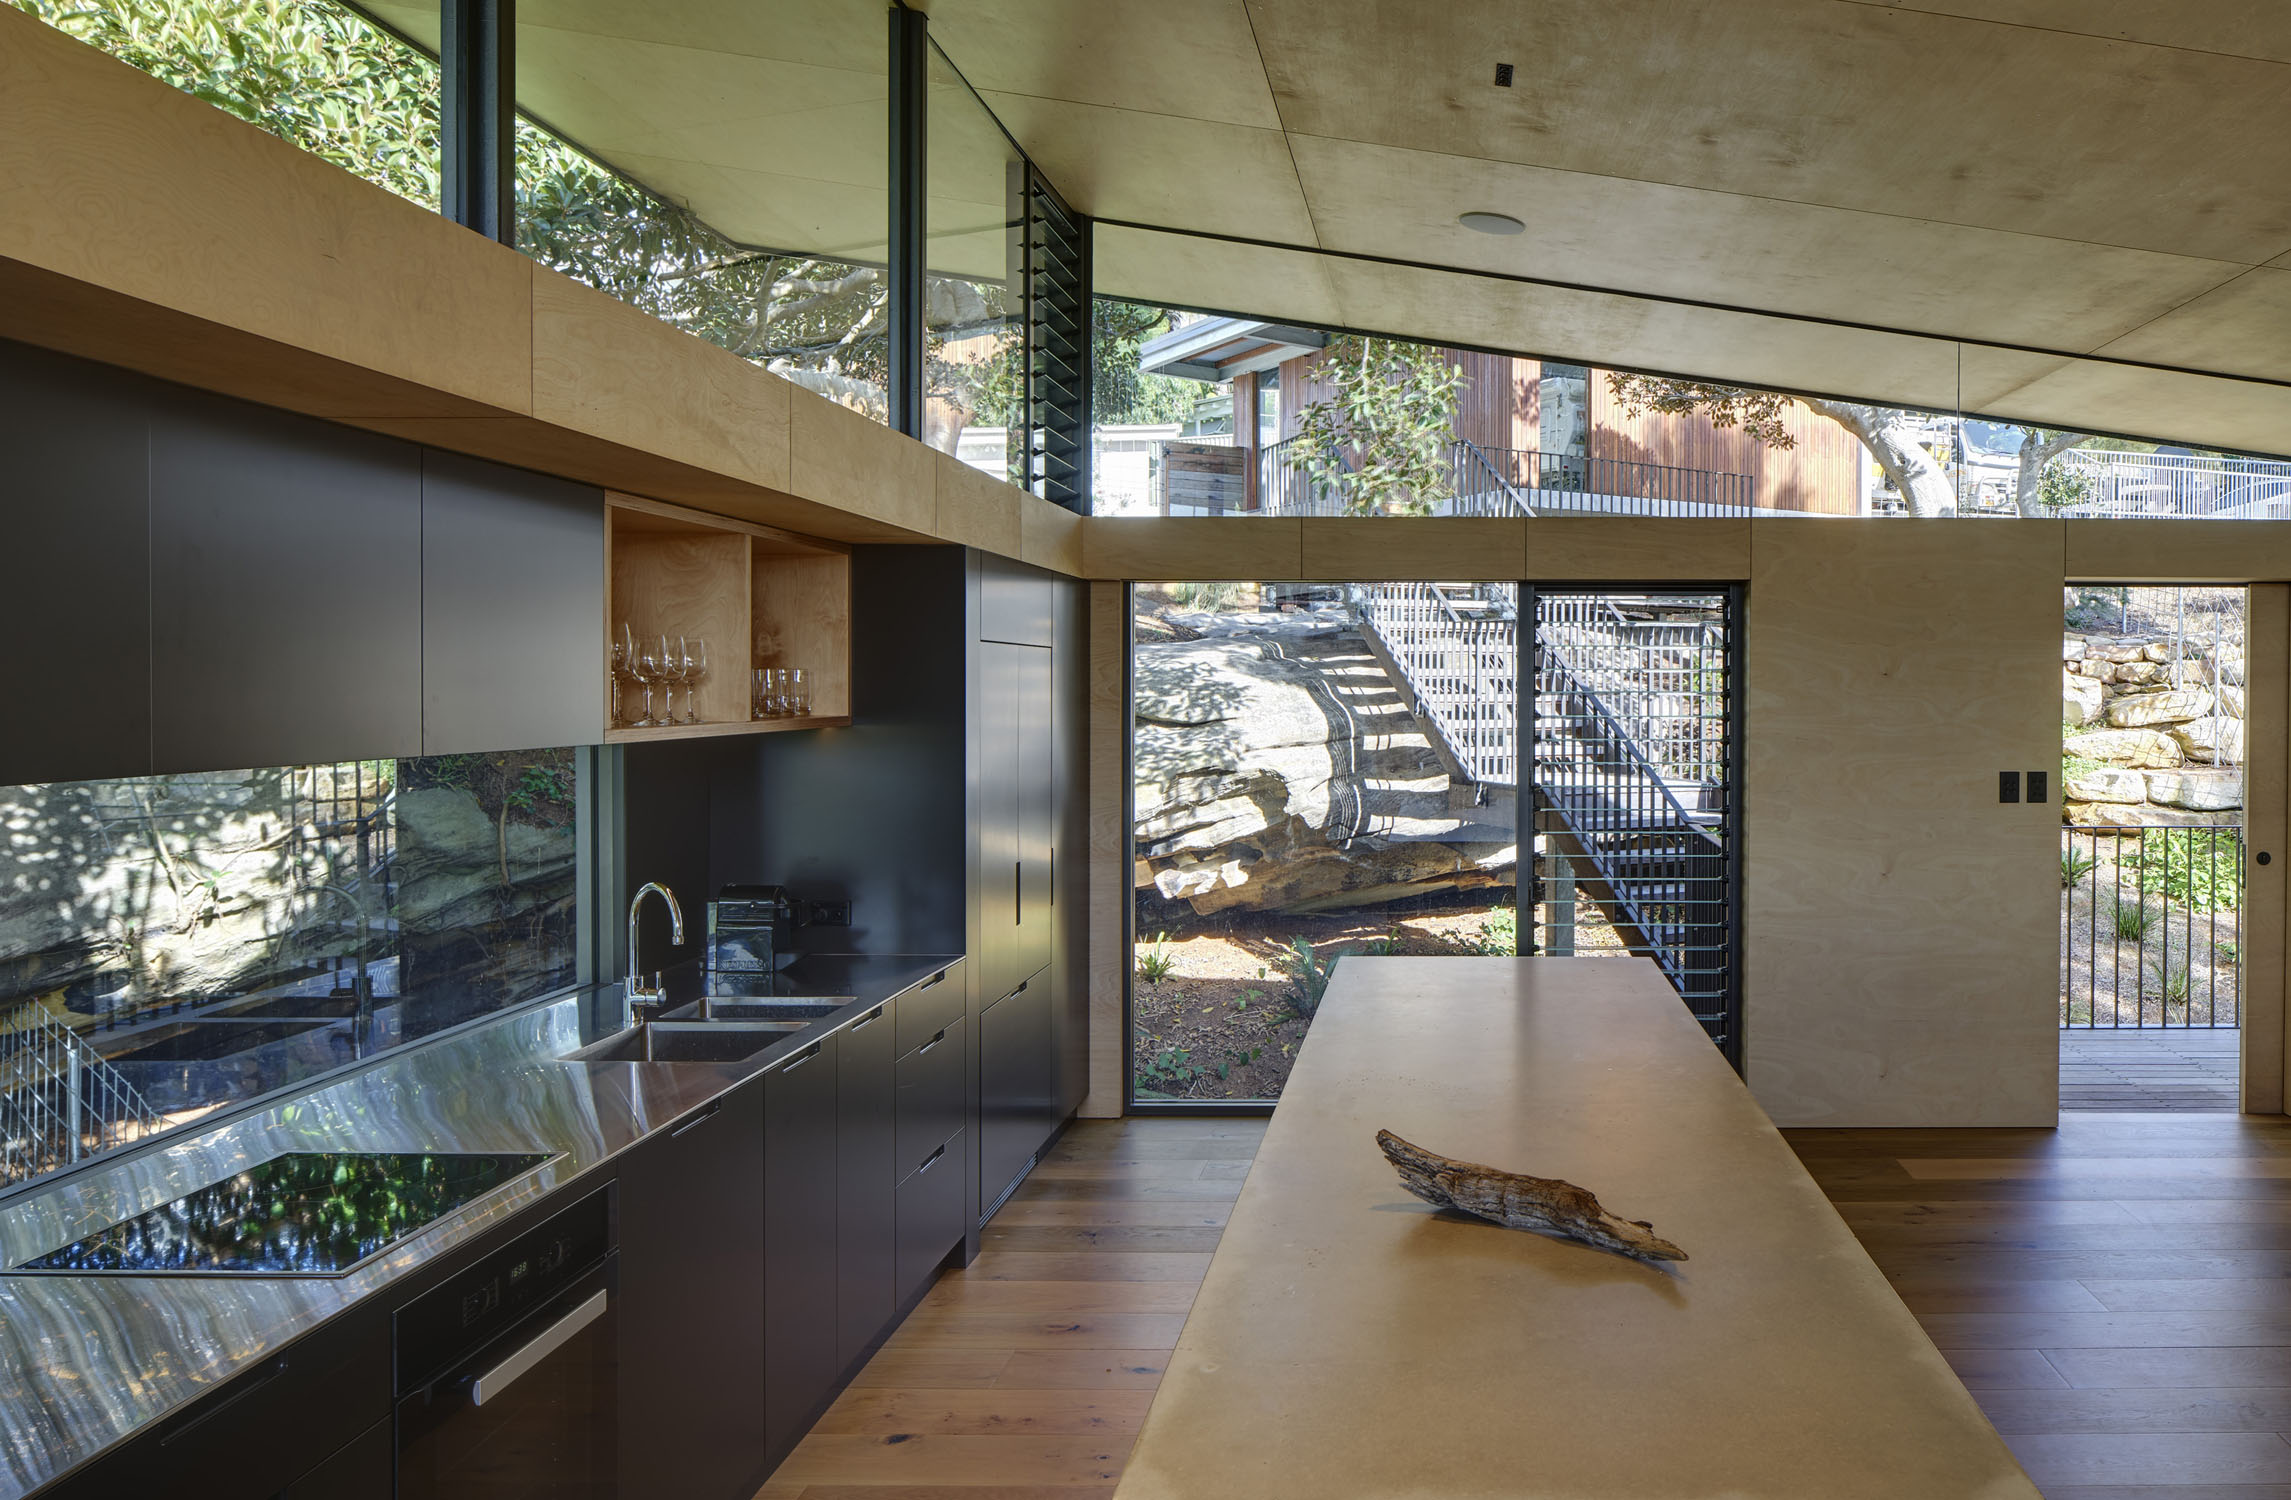 Kitchen as pivotal point of house, views to entry Michael Nicholson